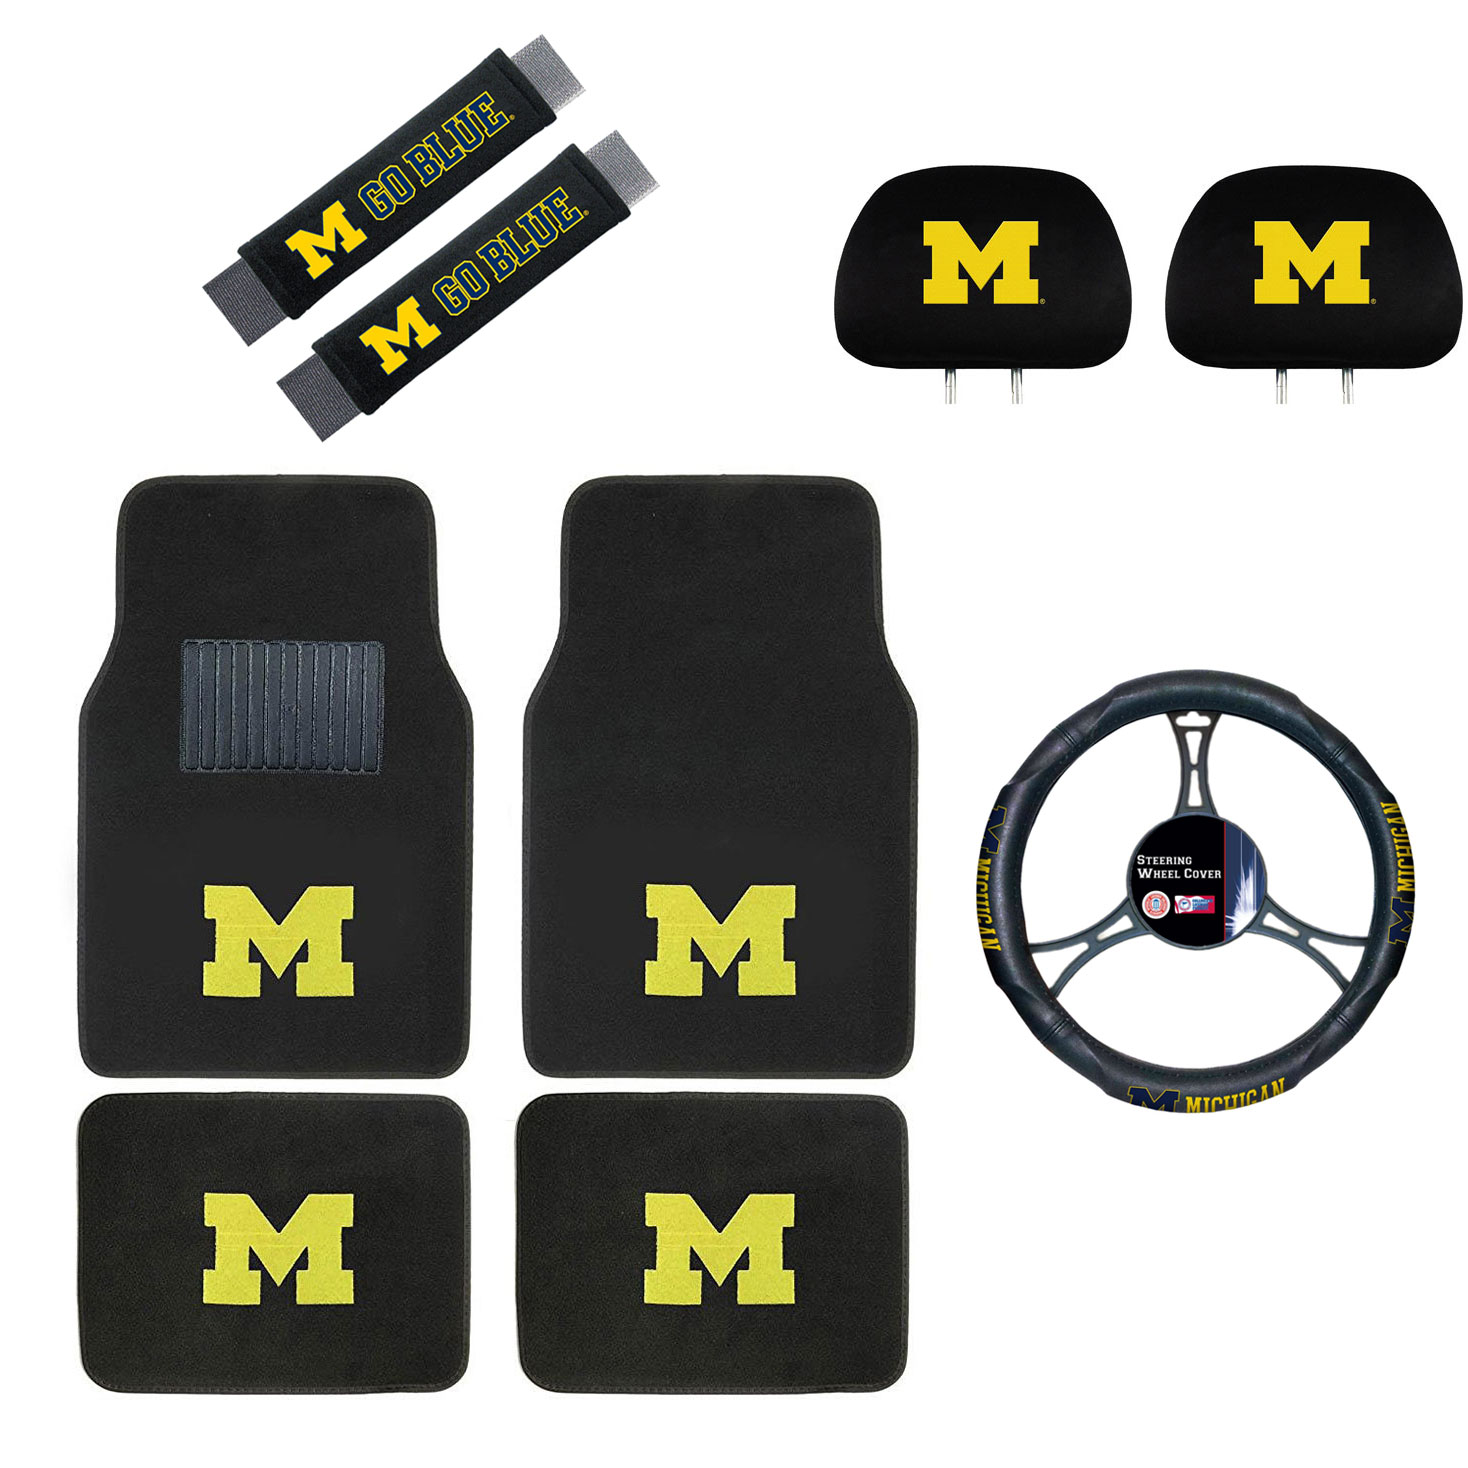 Michigan Wolverines Floor Mat, Headrest Wheel Cover and Shoulder Pads Gift Set